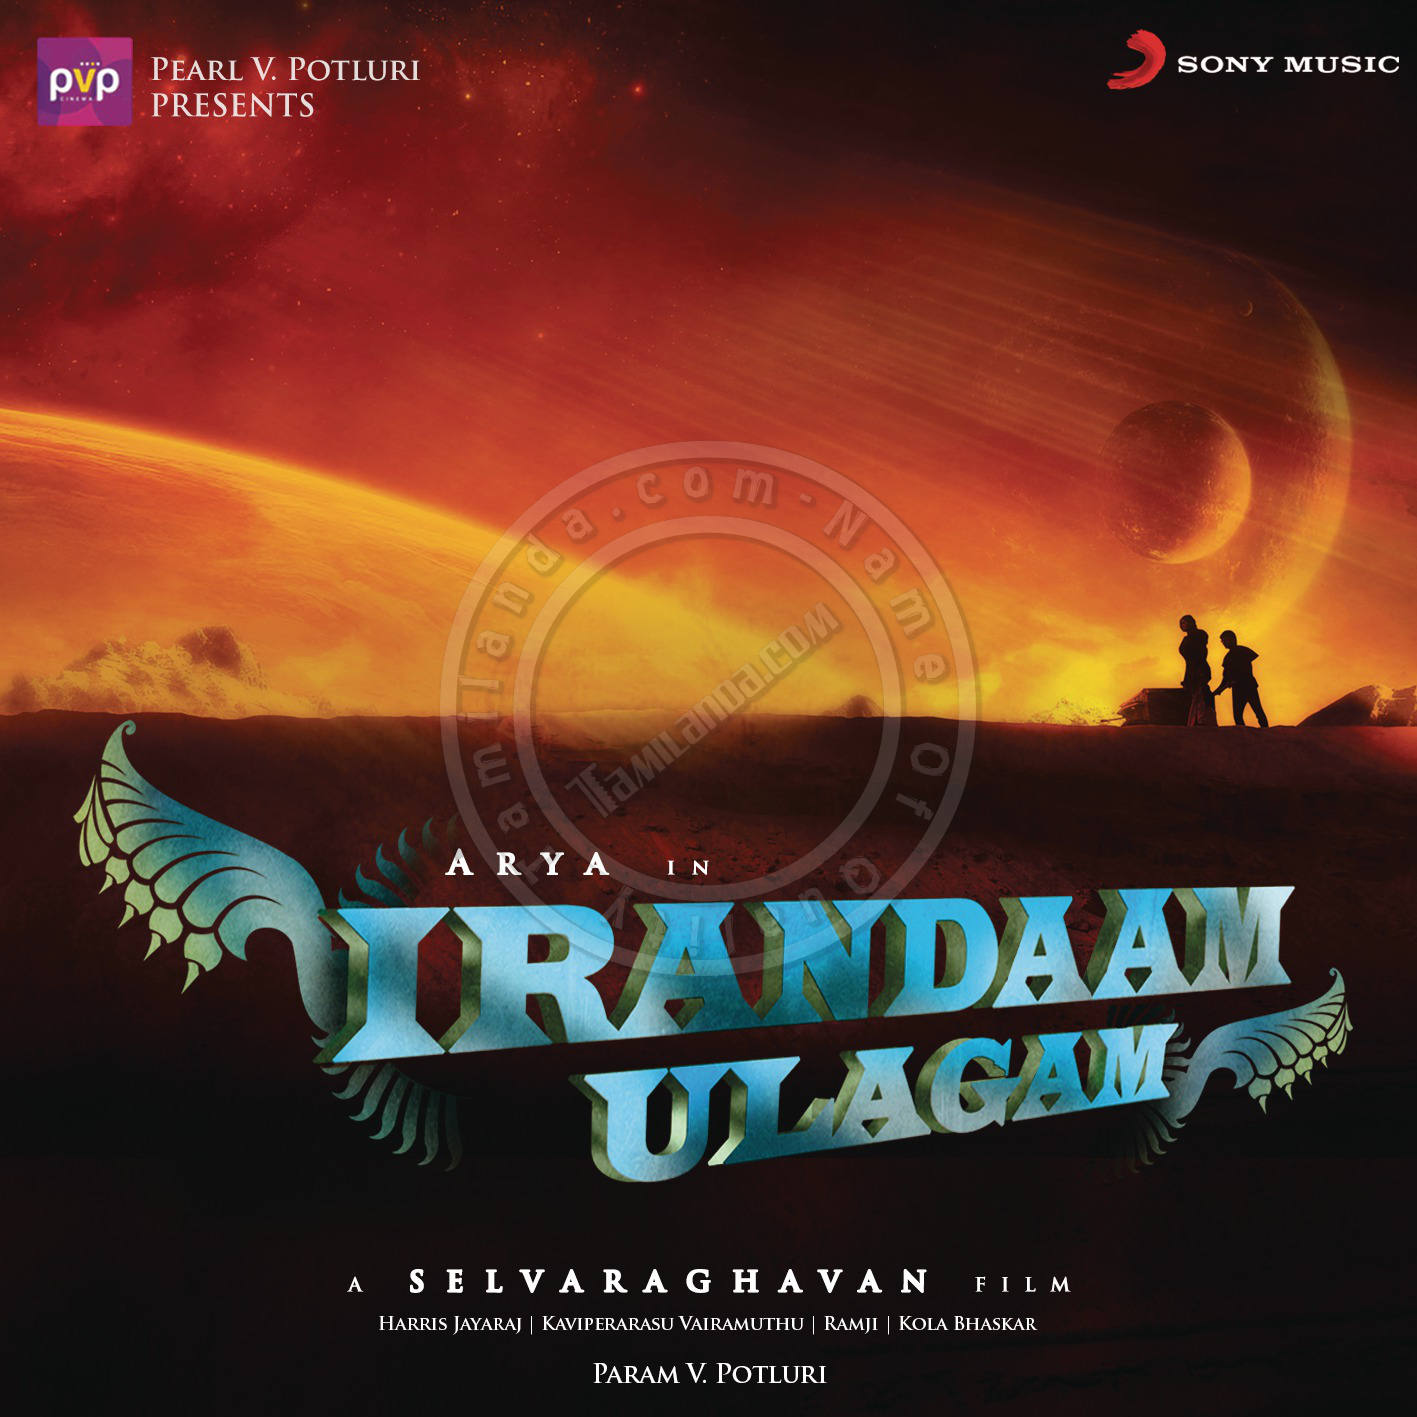 Irandaam Ulagam 16 BIT FLAC Songs